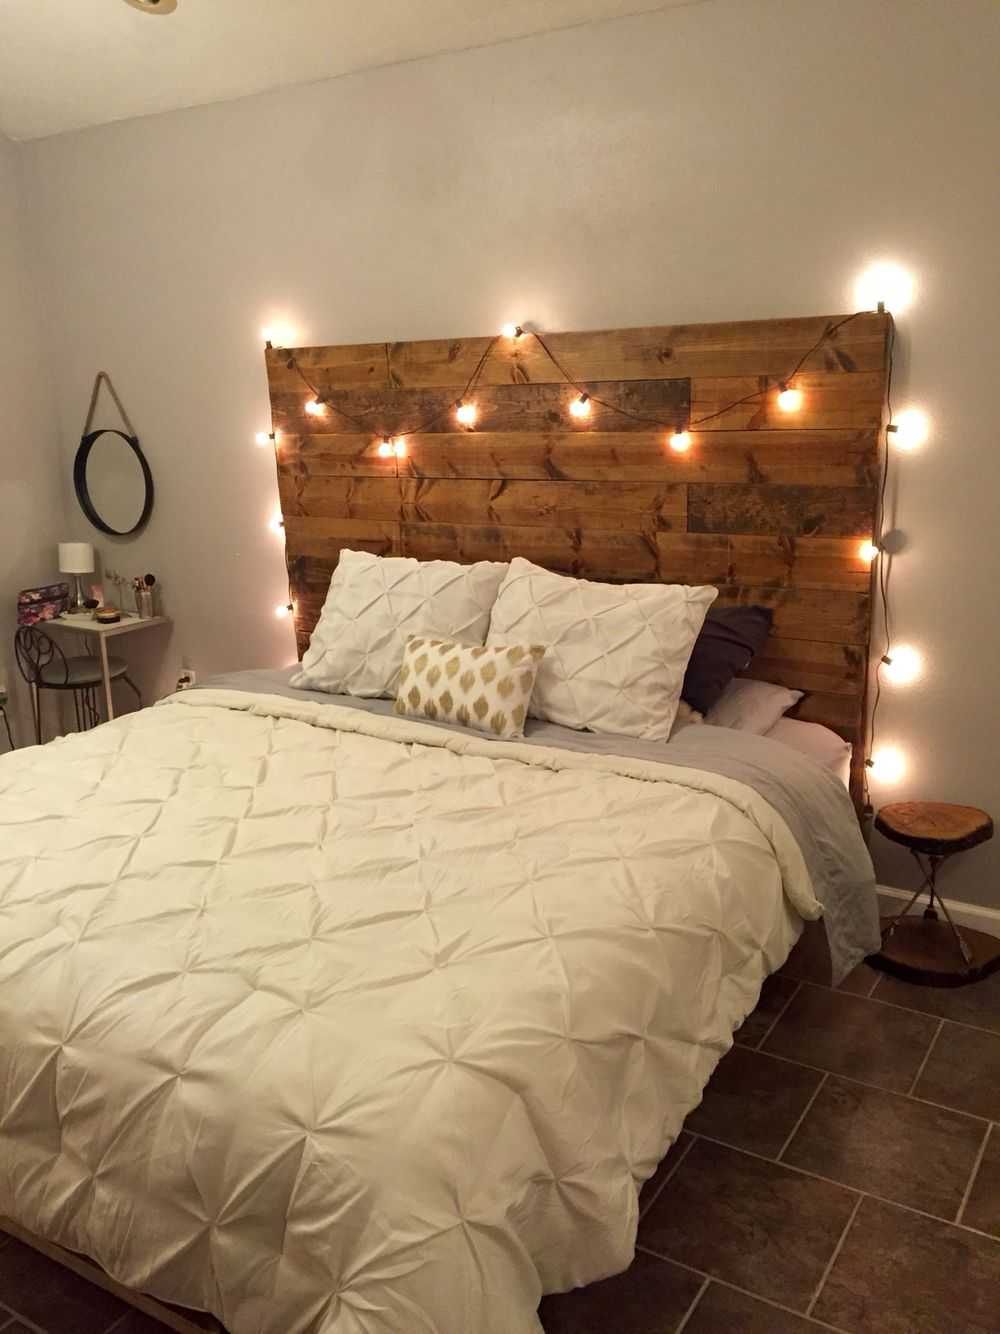 DIY master bed frame and headboard with